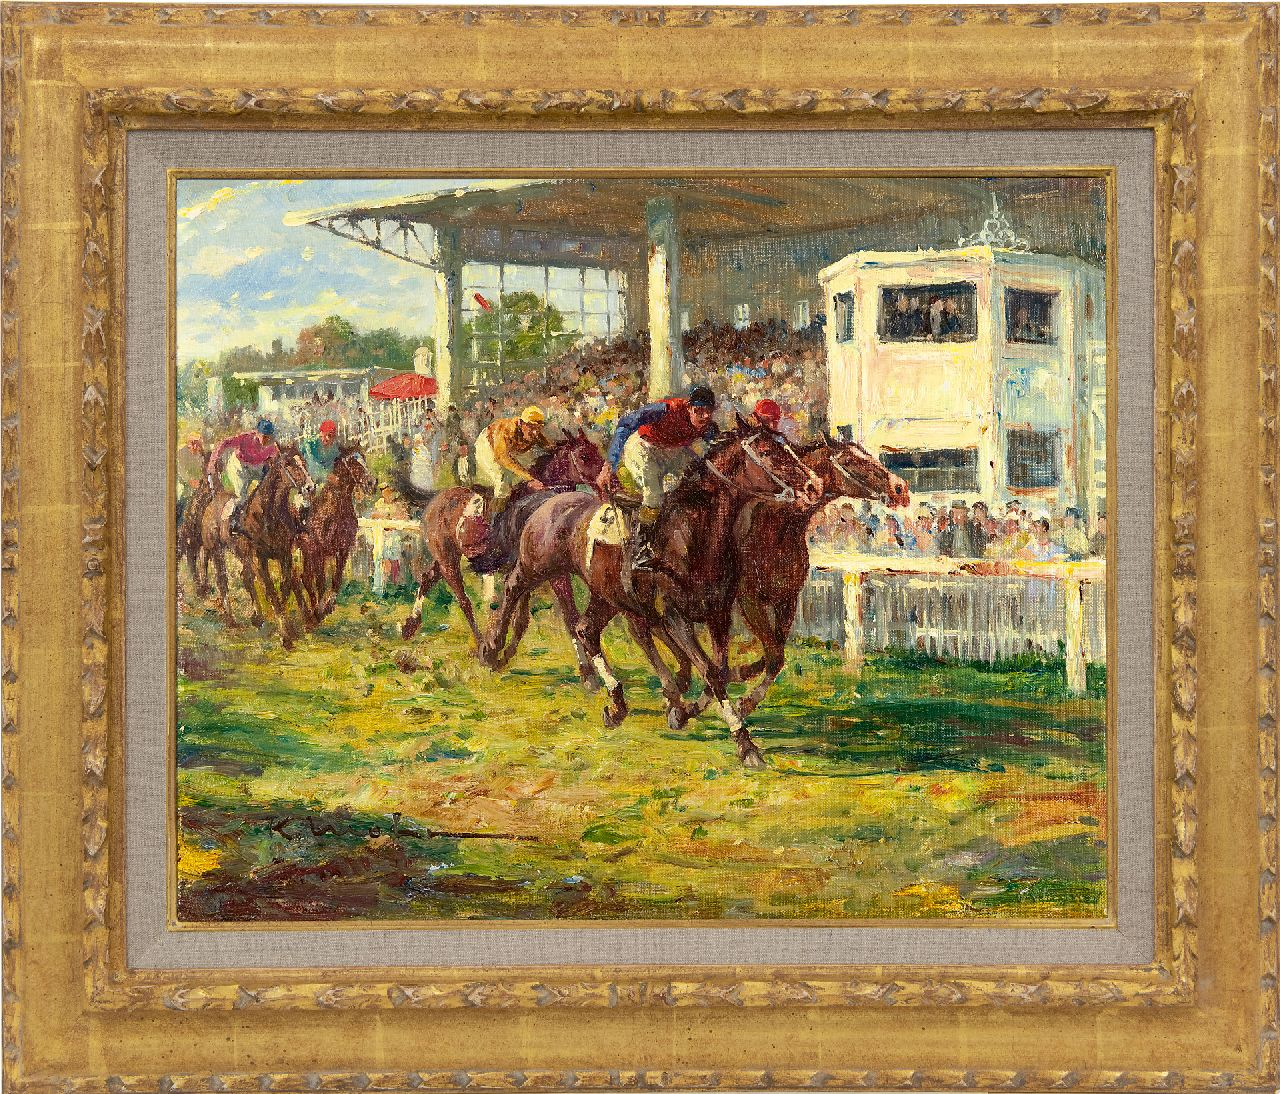 Mohr K.  | Karl Mohr | Paintings offered for sale | At the races at Köln-Weidenpesch, oil on canvas 40.3 x 50.3 cm, signed l.l.